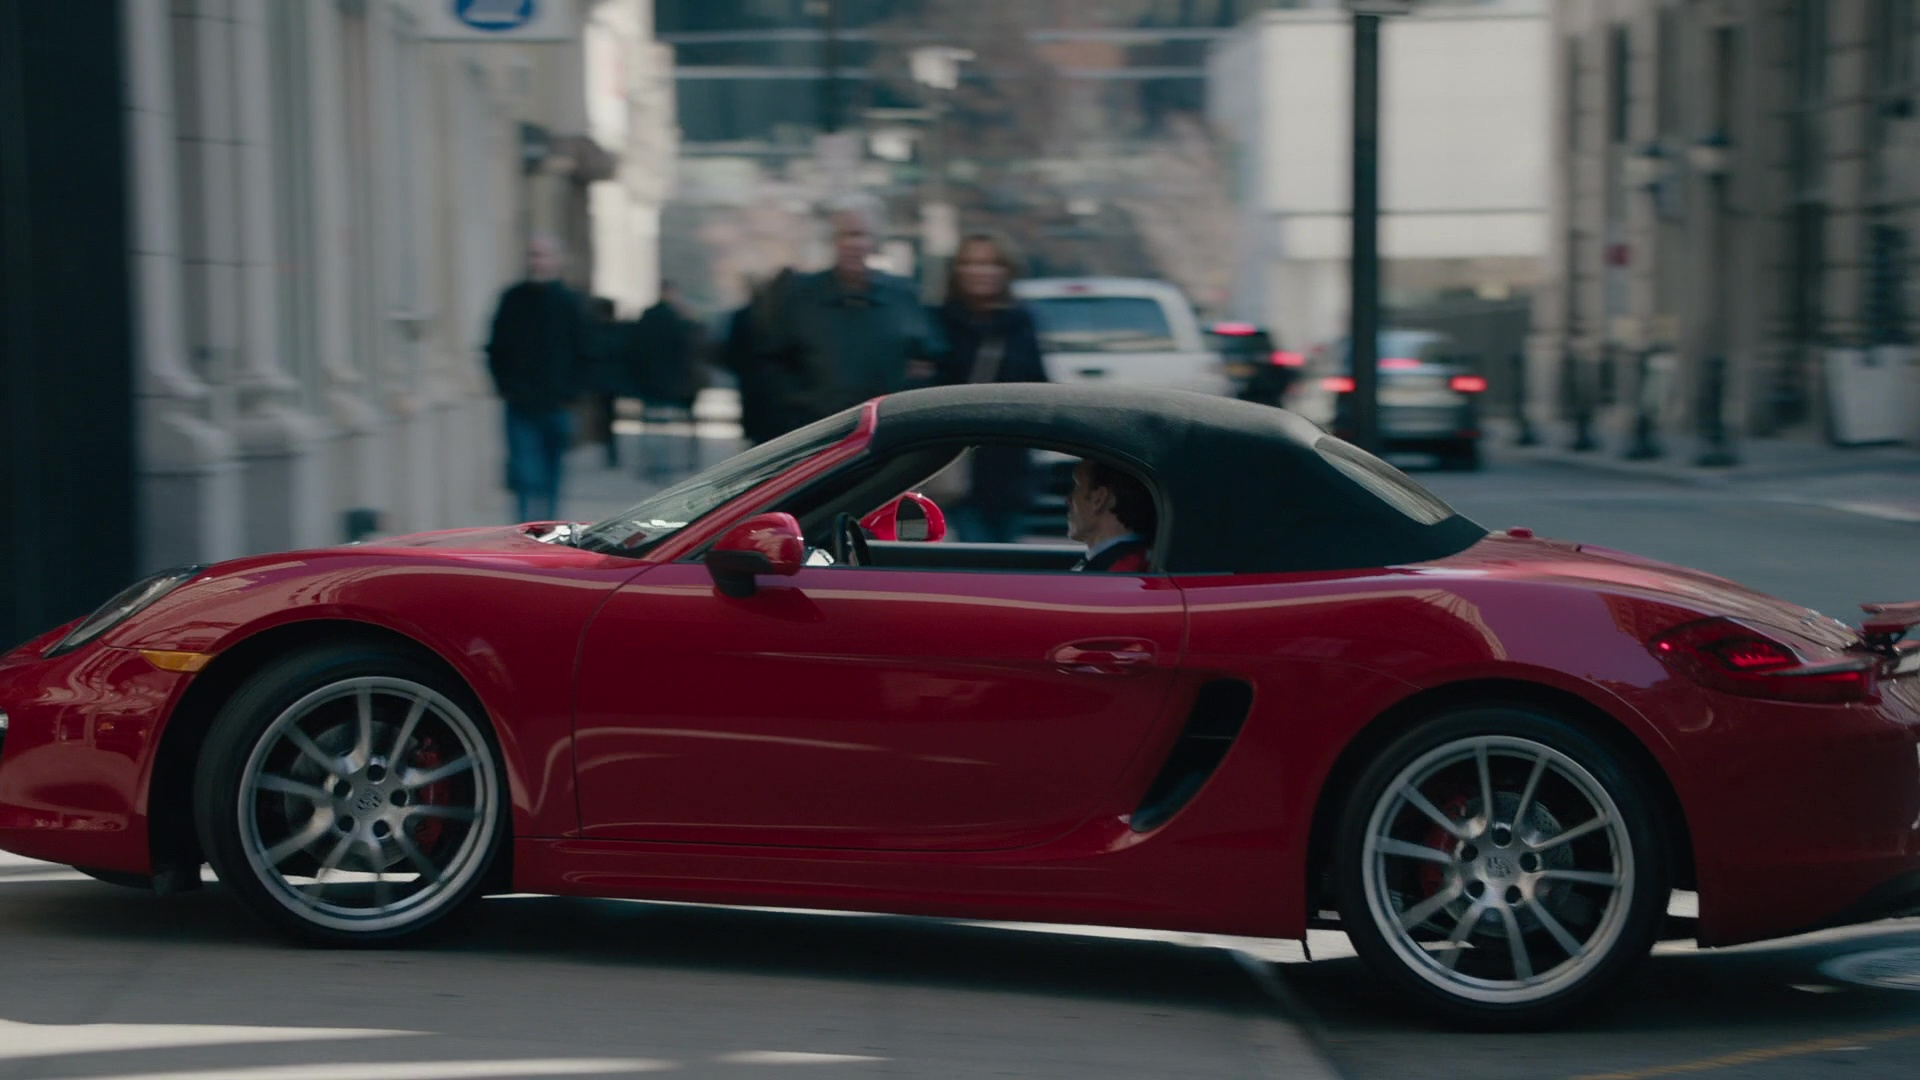 Red Porsche 718 Boxster Car Driven By Stephen Kunken In